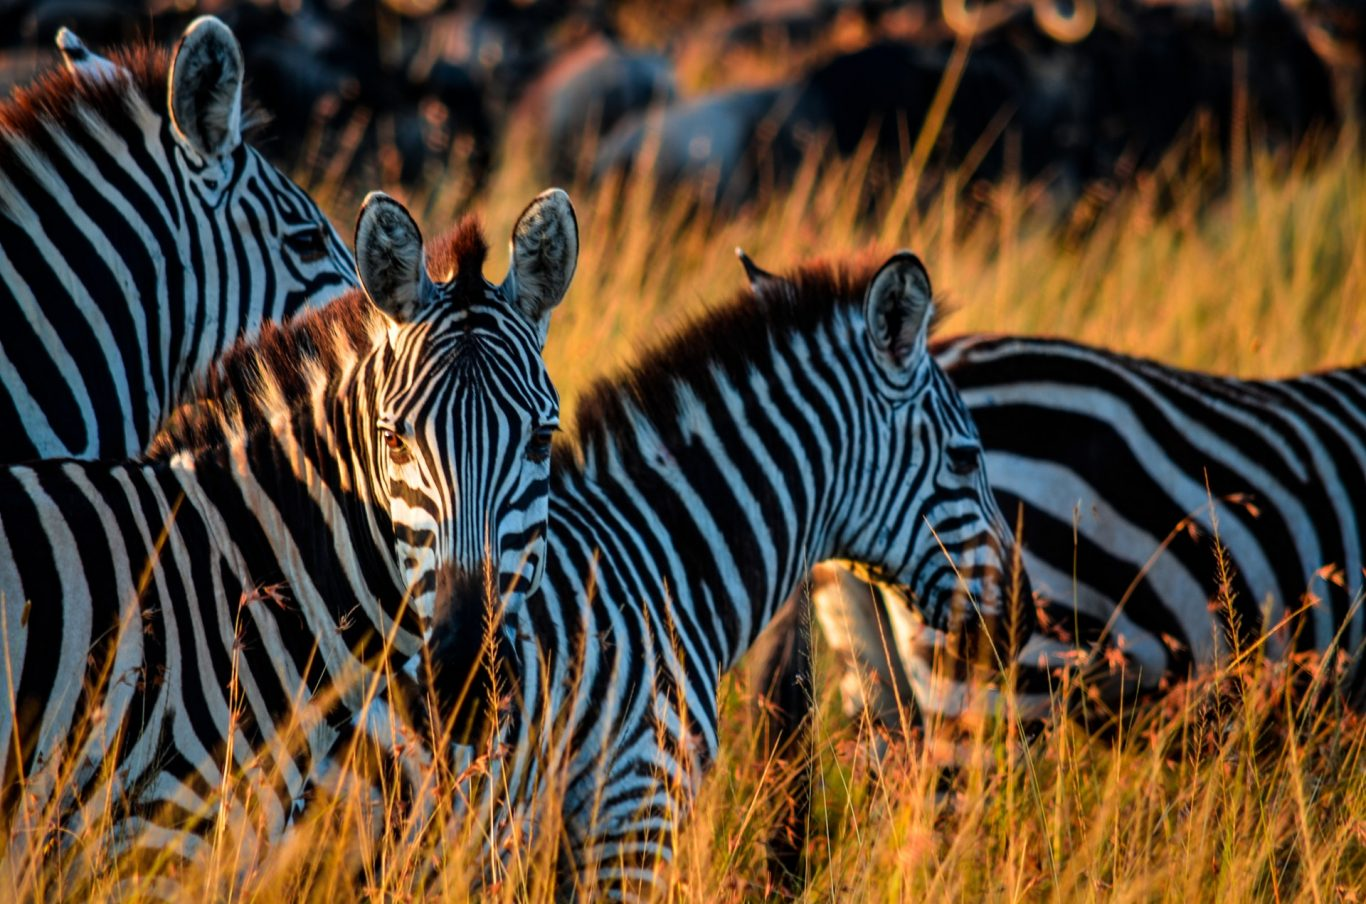 Zebras and Wildebeest in Serengeti National Park